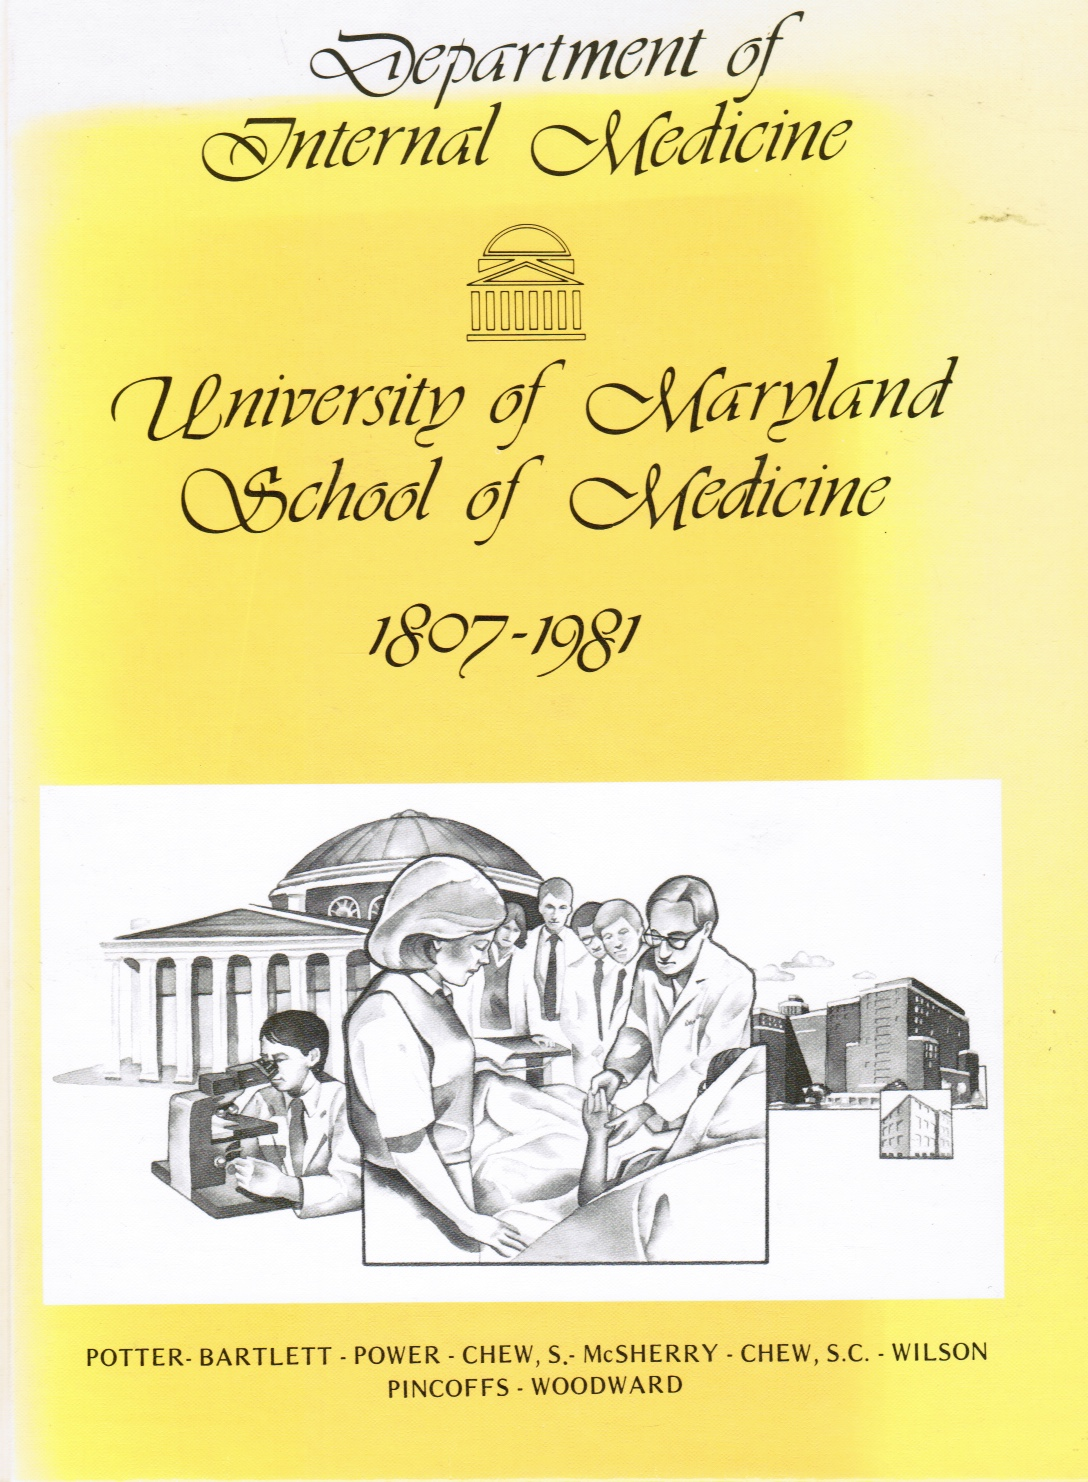 Image for Department of Internal Medicine, University of Maryland School of Medicine, 1807-1981